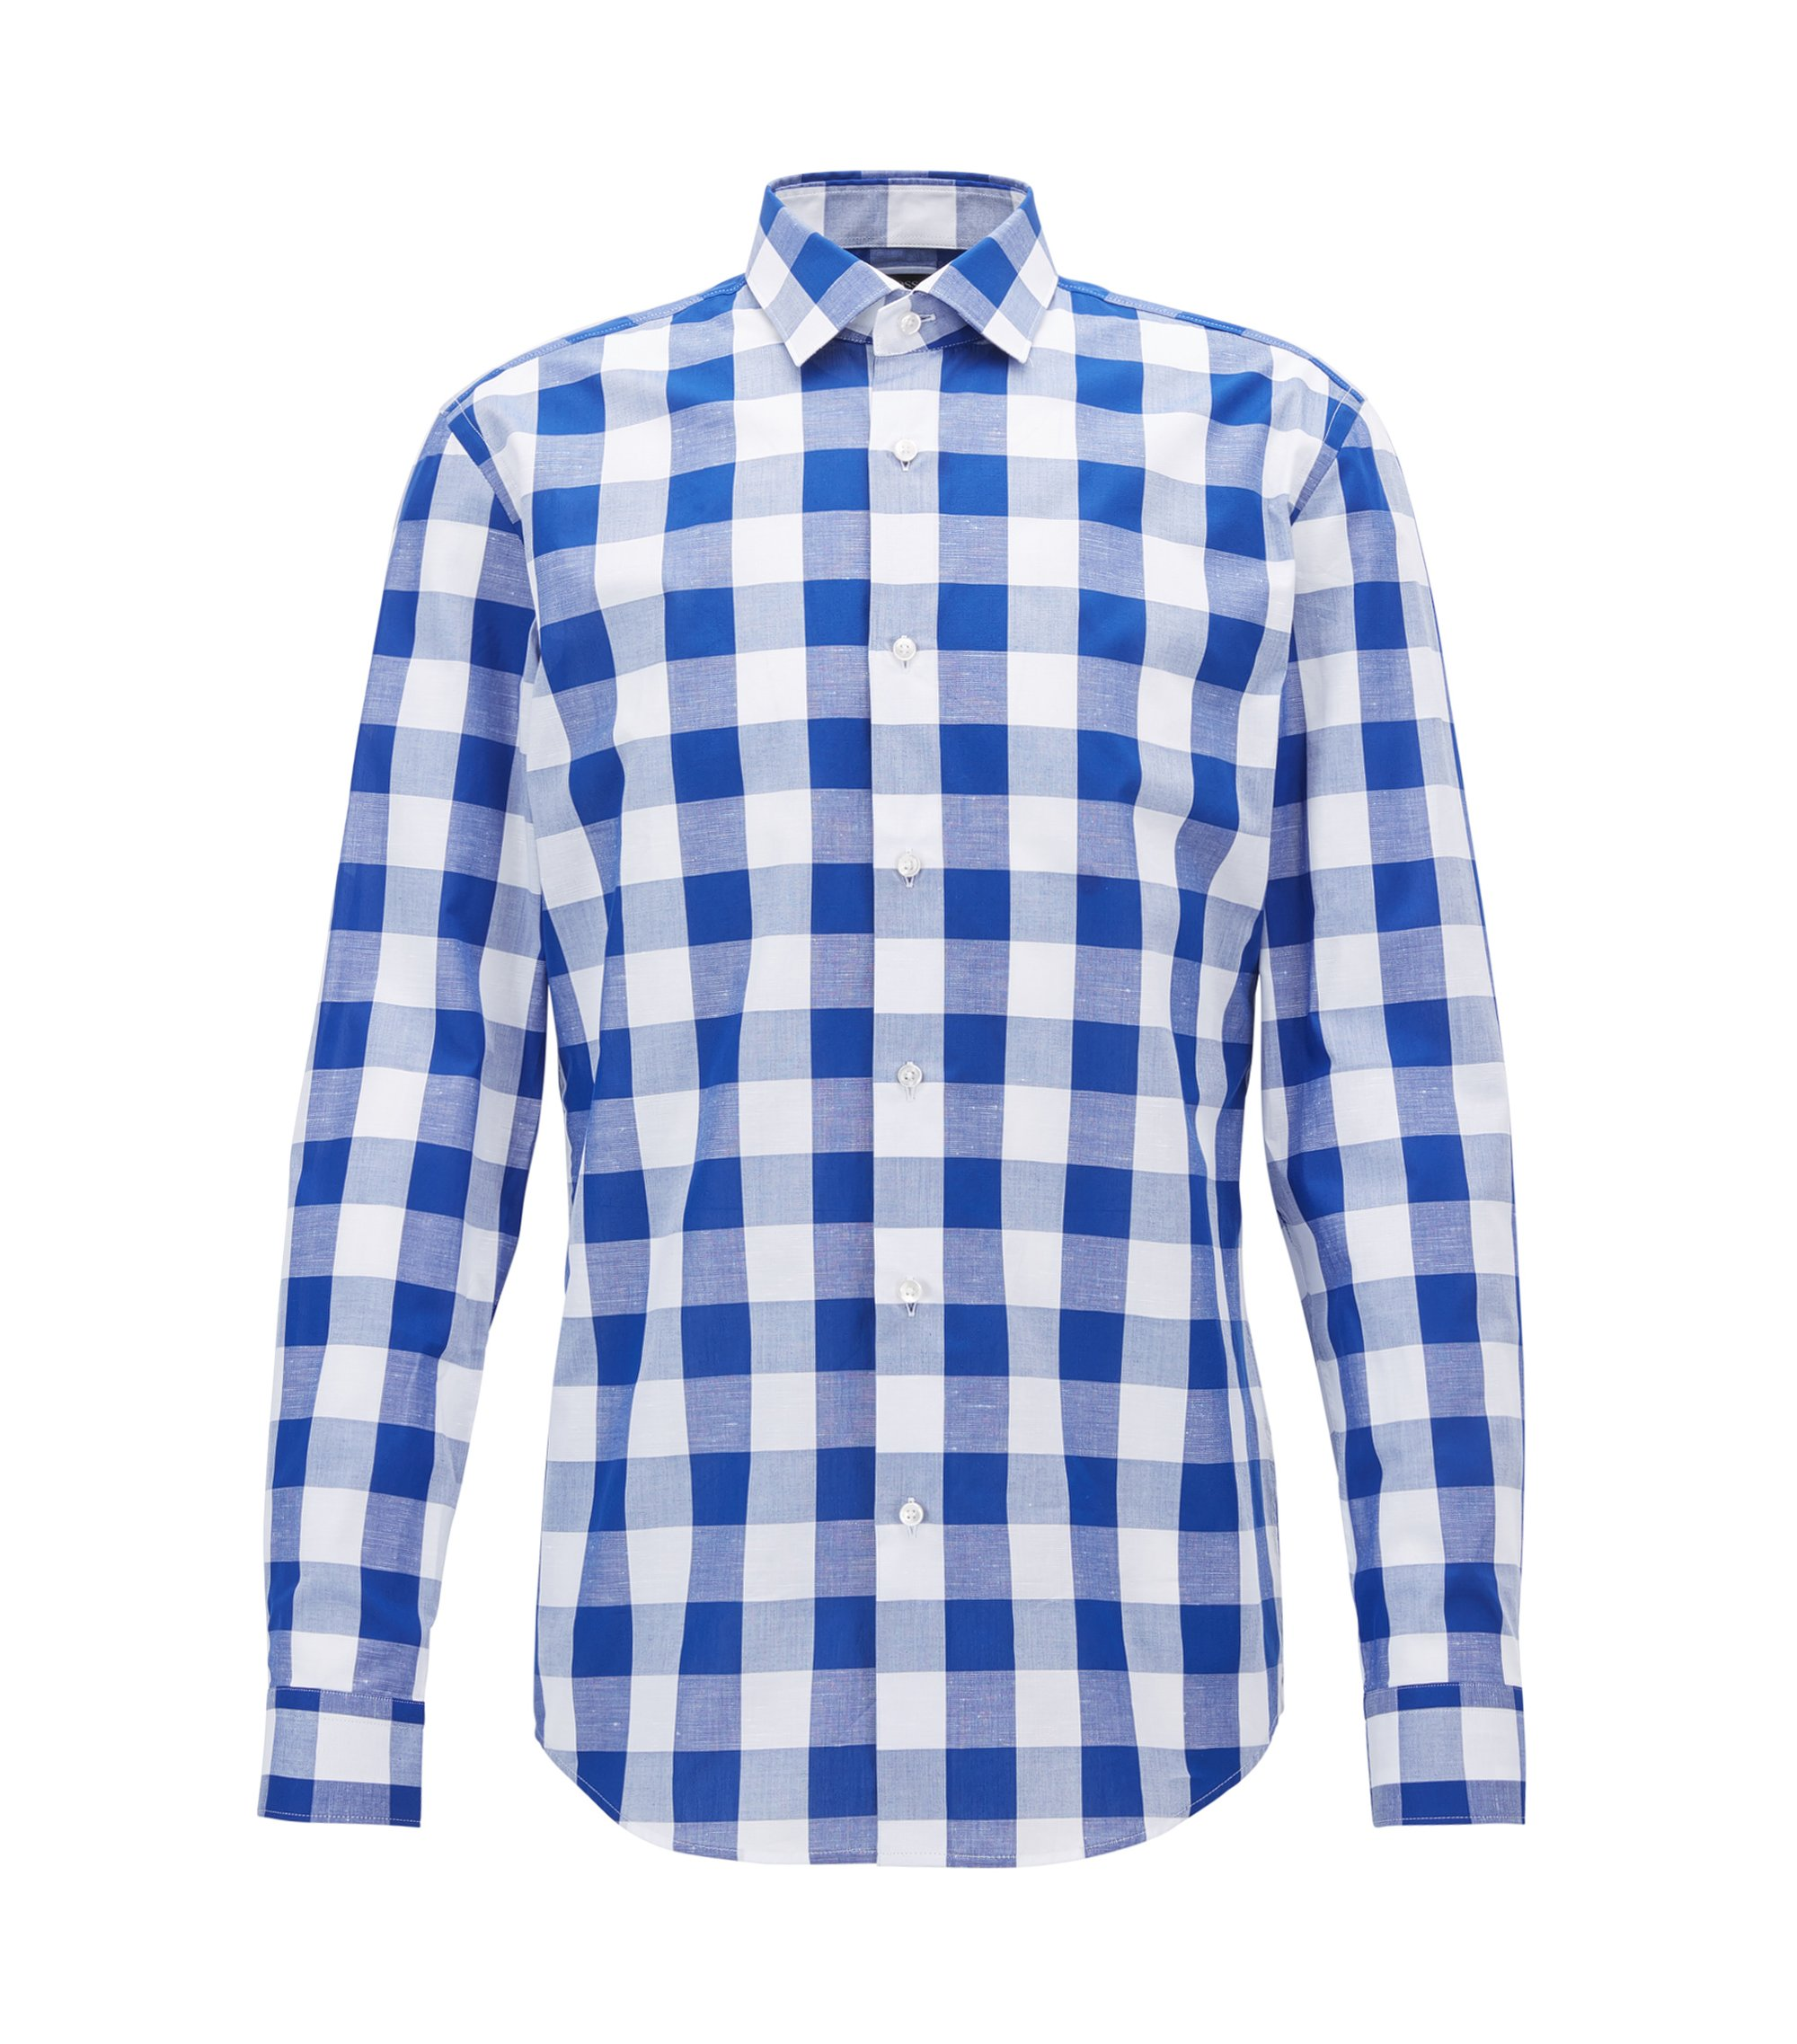 Checked Cotton Linen Dress Shirt, Slim Fit | Ismo, Blue